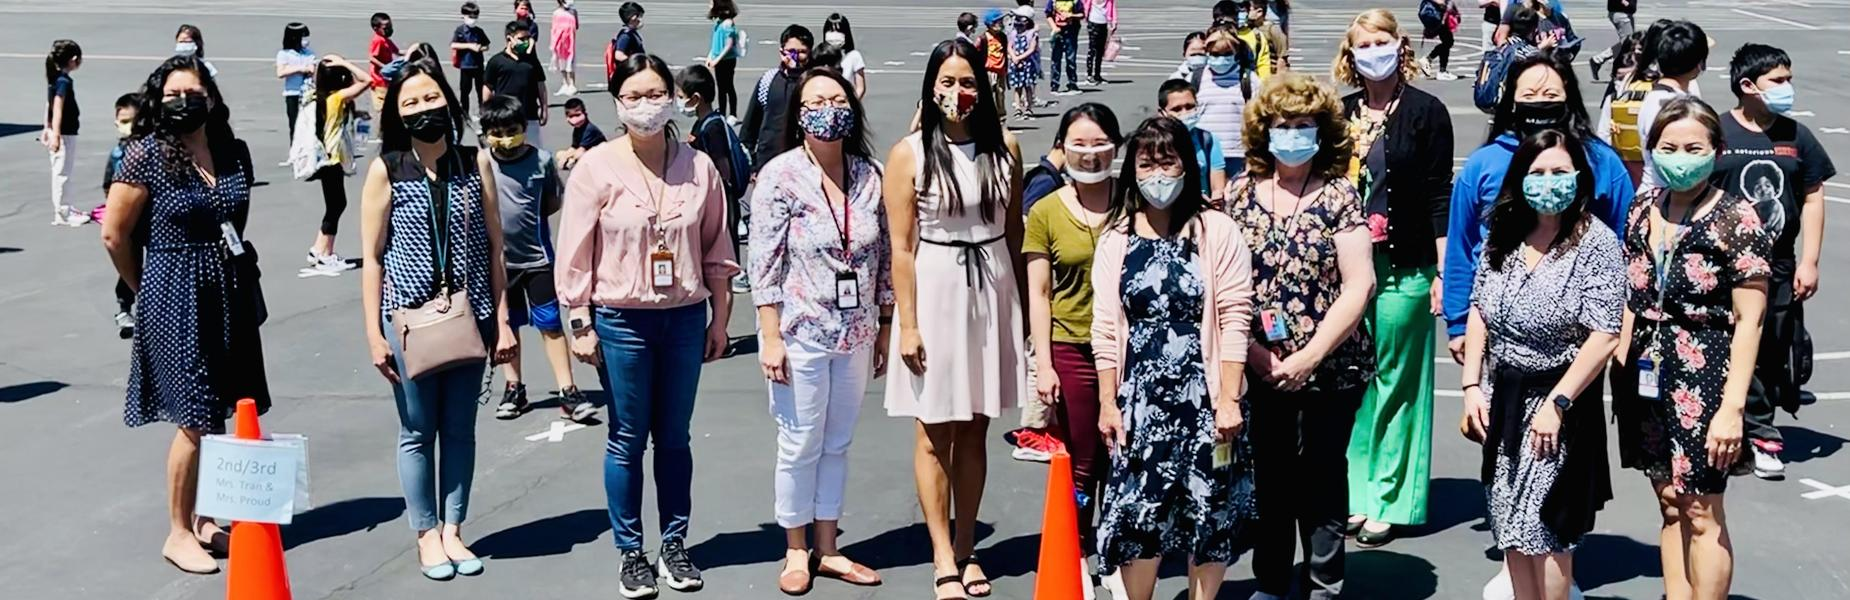 Ramona Staff and Faculty during recess.